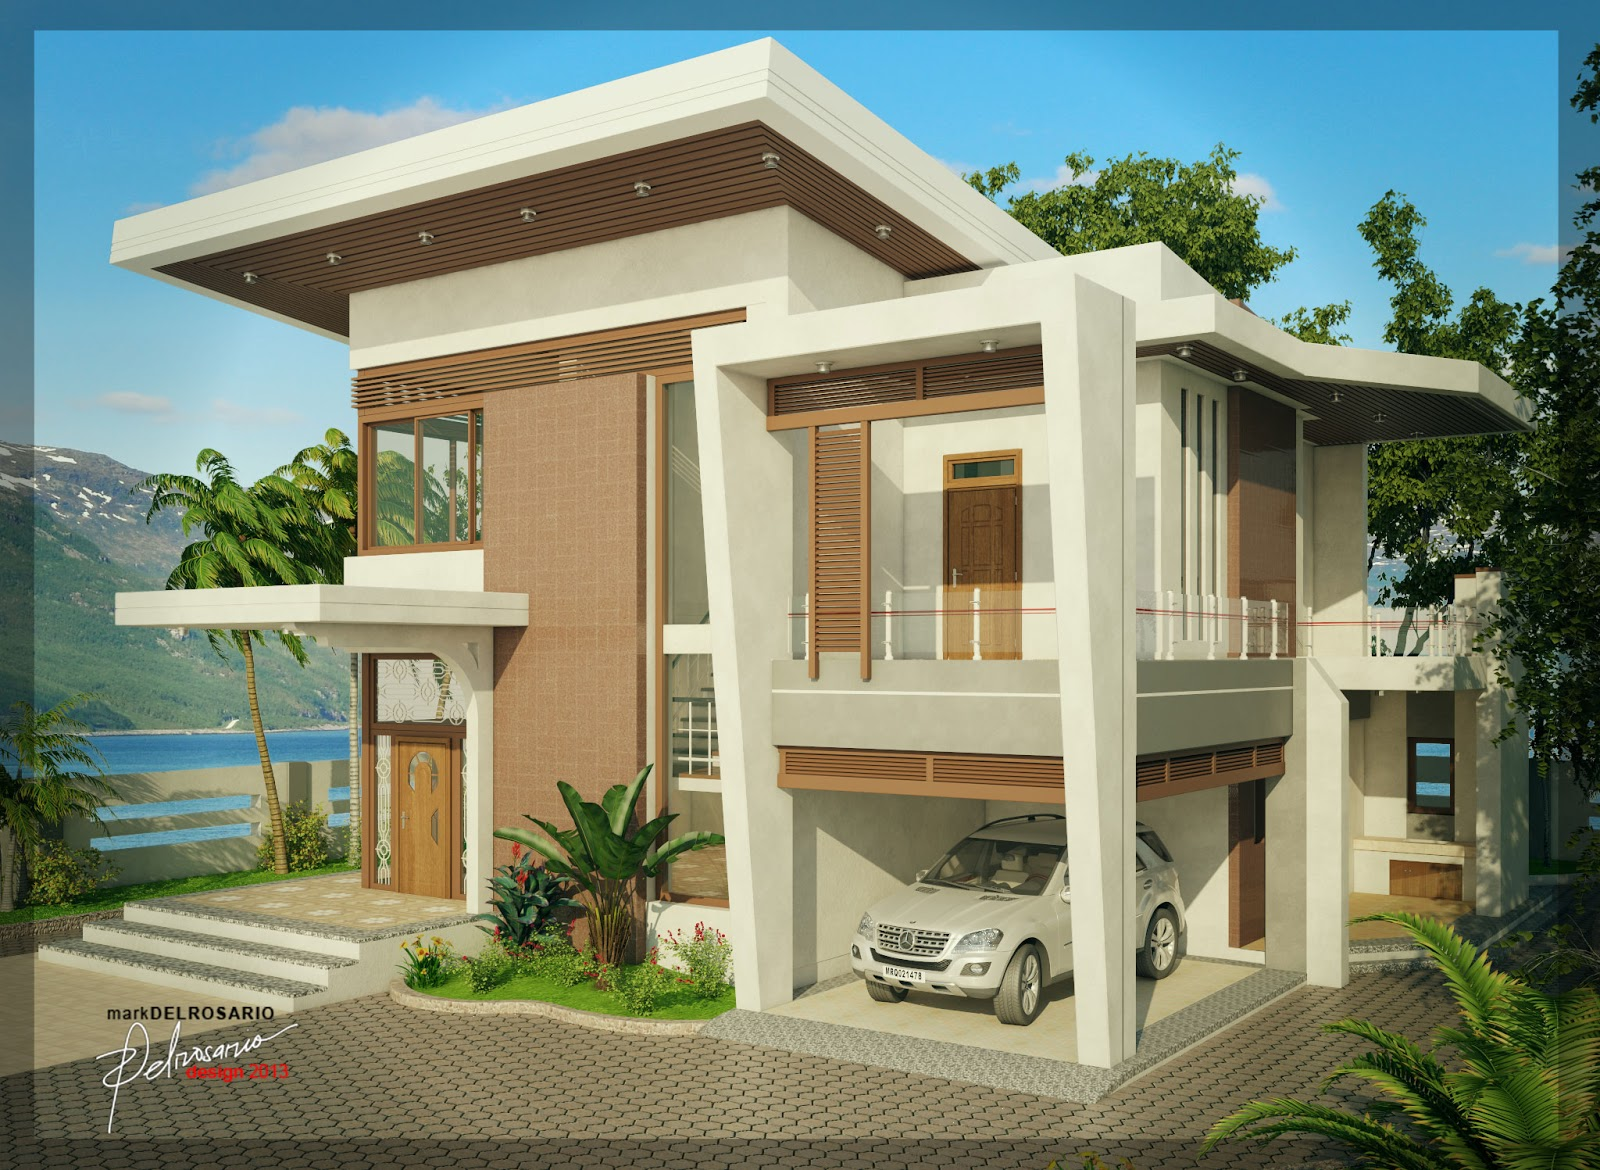 Mark del rosario blog 3d visual Residential design